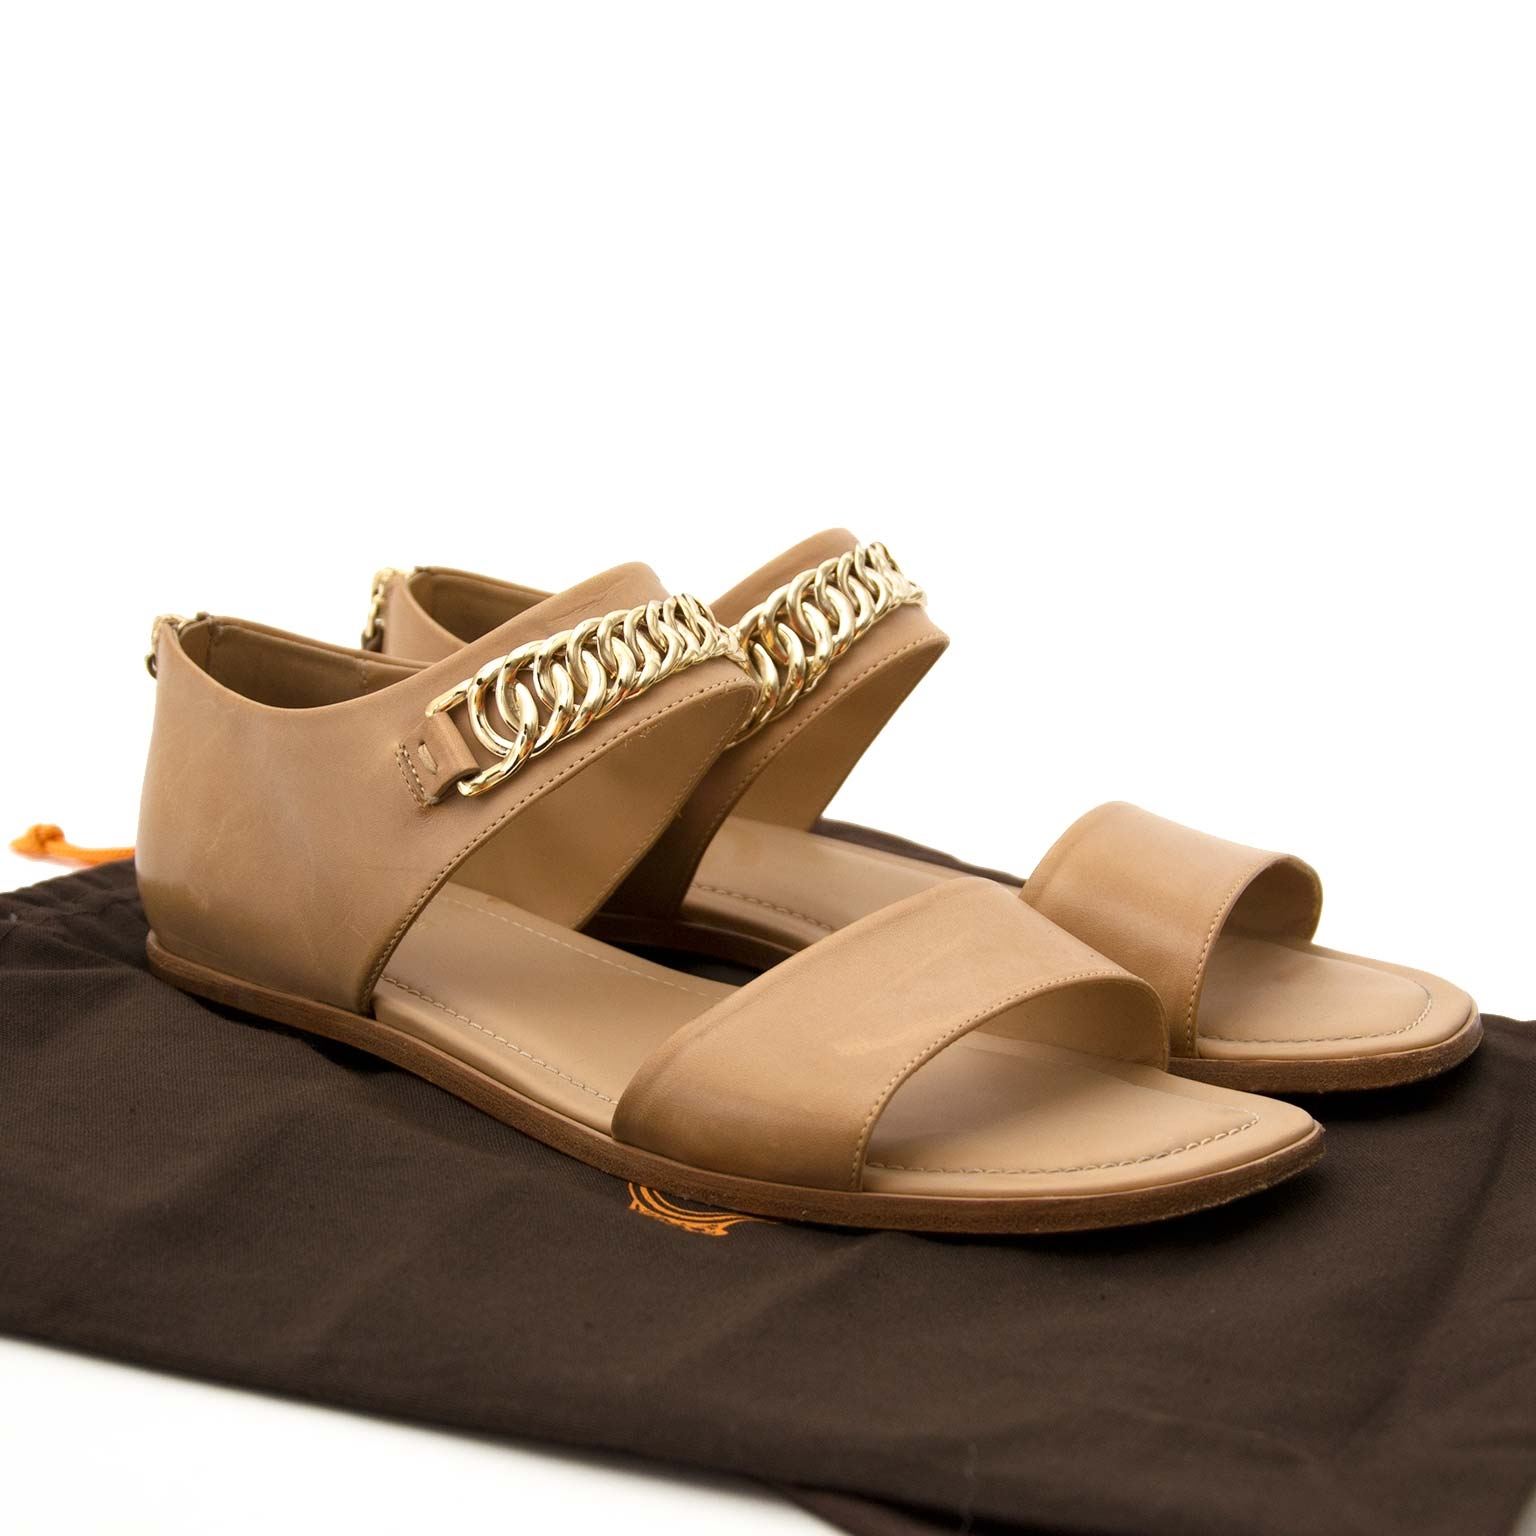 Buy Tod's chain sandals now online at Labellov vintage fashion webshop